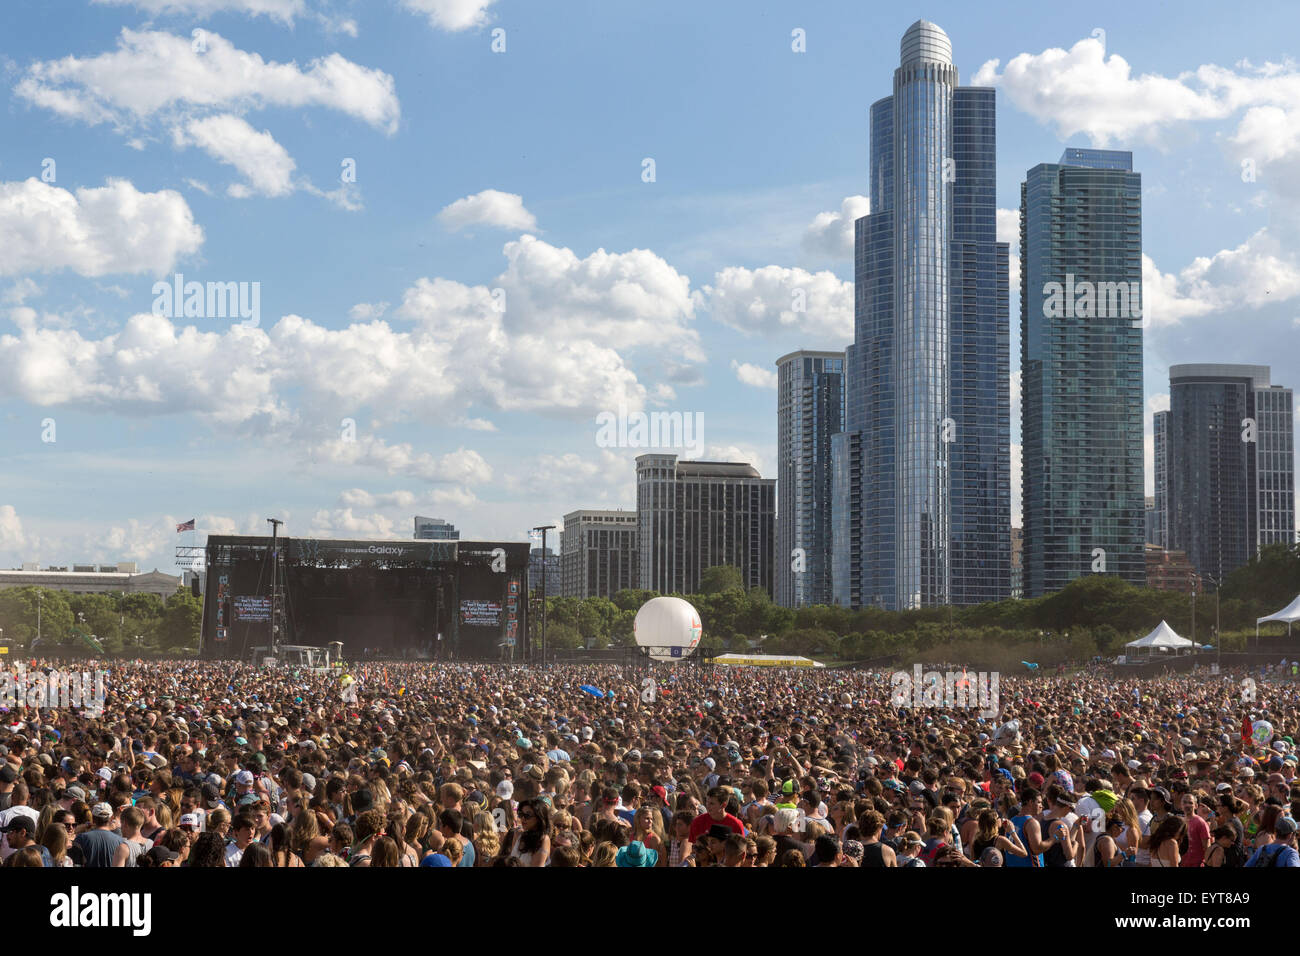 Chicago, Illinois, USA. 1st Aug, 2015. Fans crowd the stage at Grant Park during Walk the Moon at the Lollapalooza - Stock Image